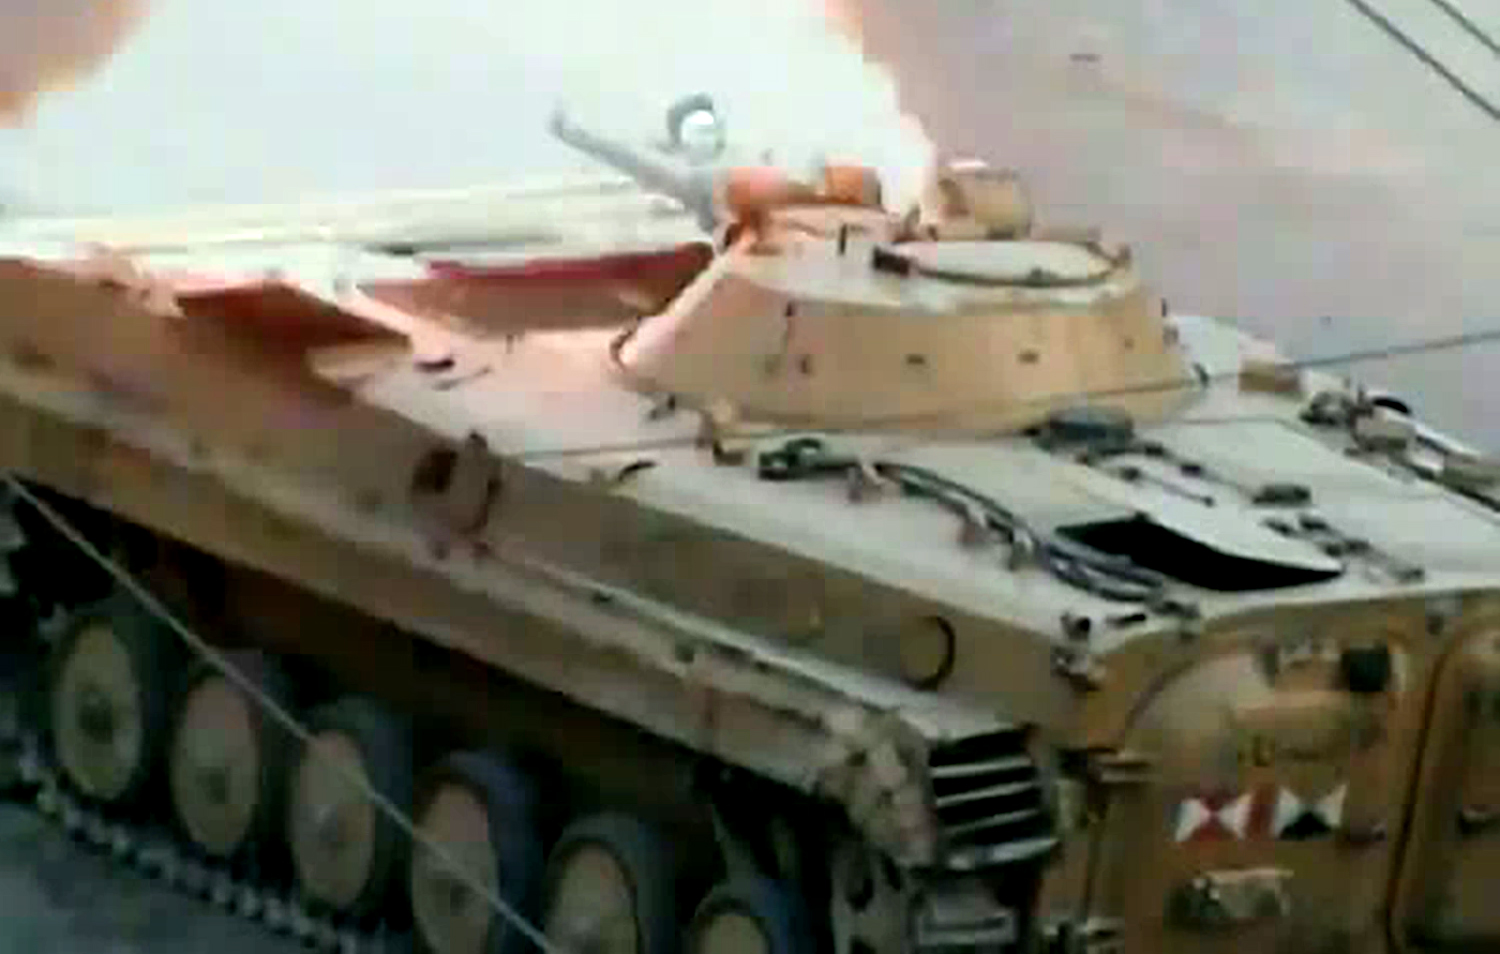 An image grab taken from a video uploaded on YouTube on July 17, 2012 allegedly shows a tank from forces loyal to Syria's President Bashar al-Assad firing a round in the city of Saqba, in Damascus province. AFP PHOTO/YOUTUBE